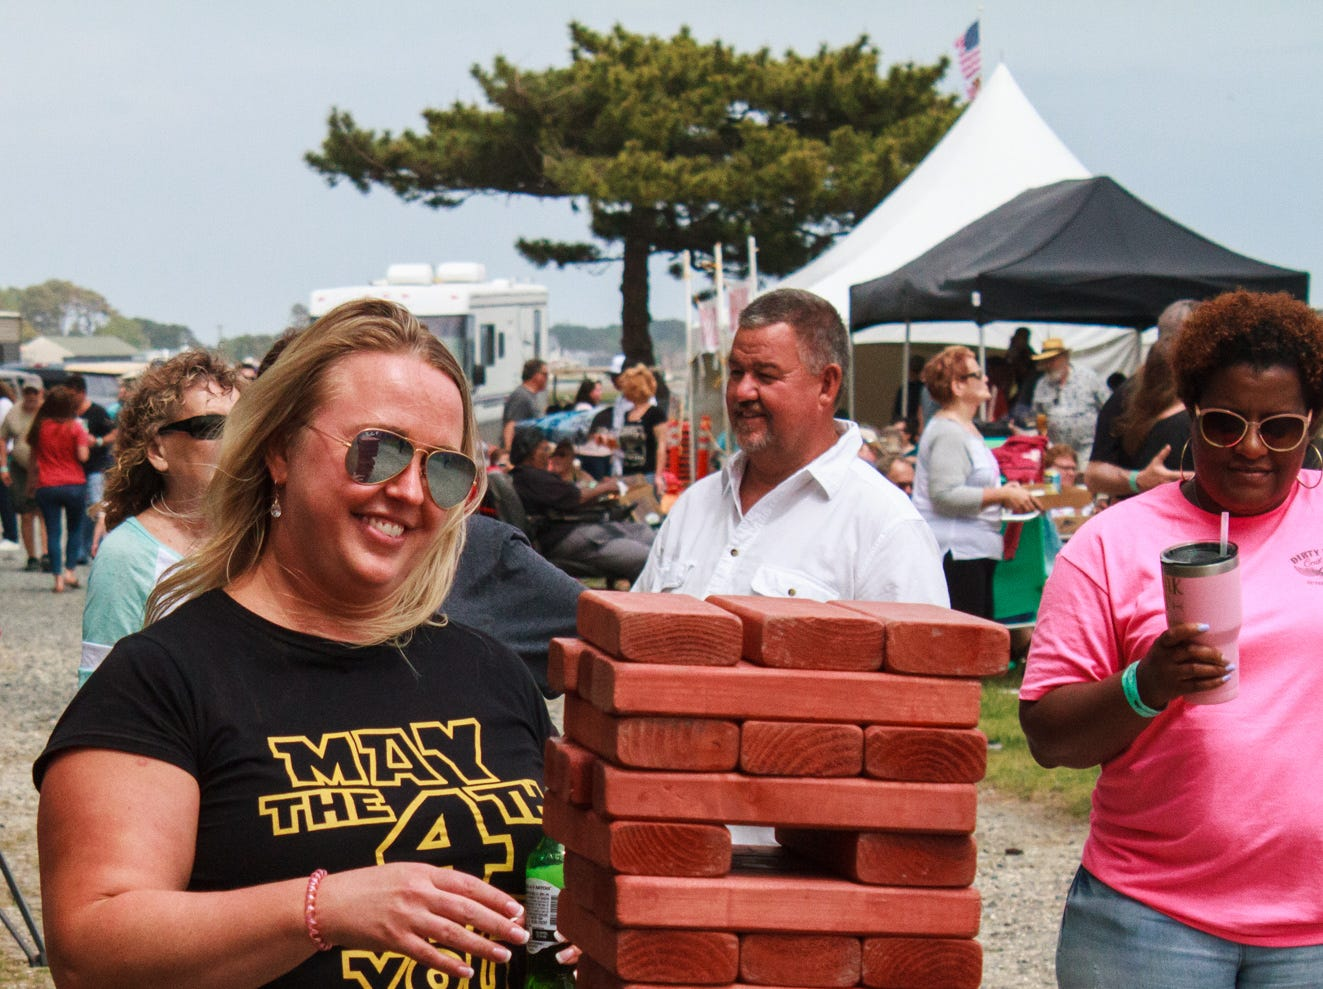 Tate Olson of Raleigh, NC plays a larger-than-usual version of Jenga on Saturday, May 4, 2019 at the Chincoteague Seafood Festival in Chincoteague, VA.